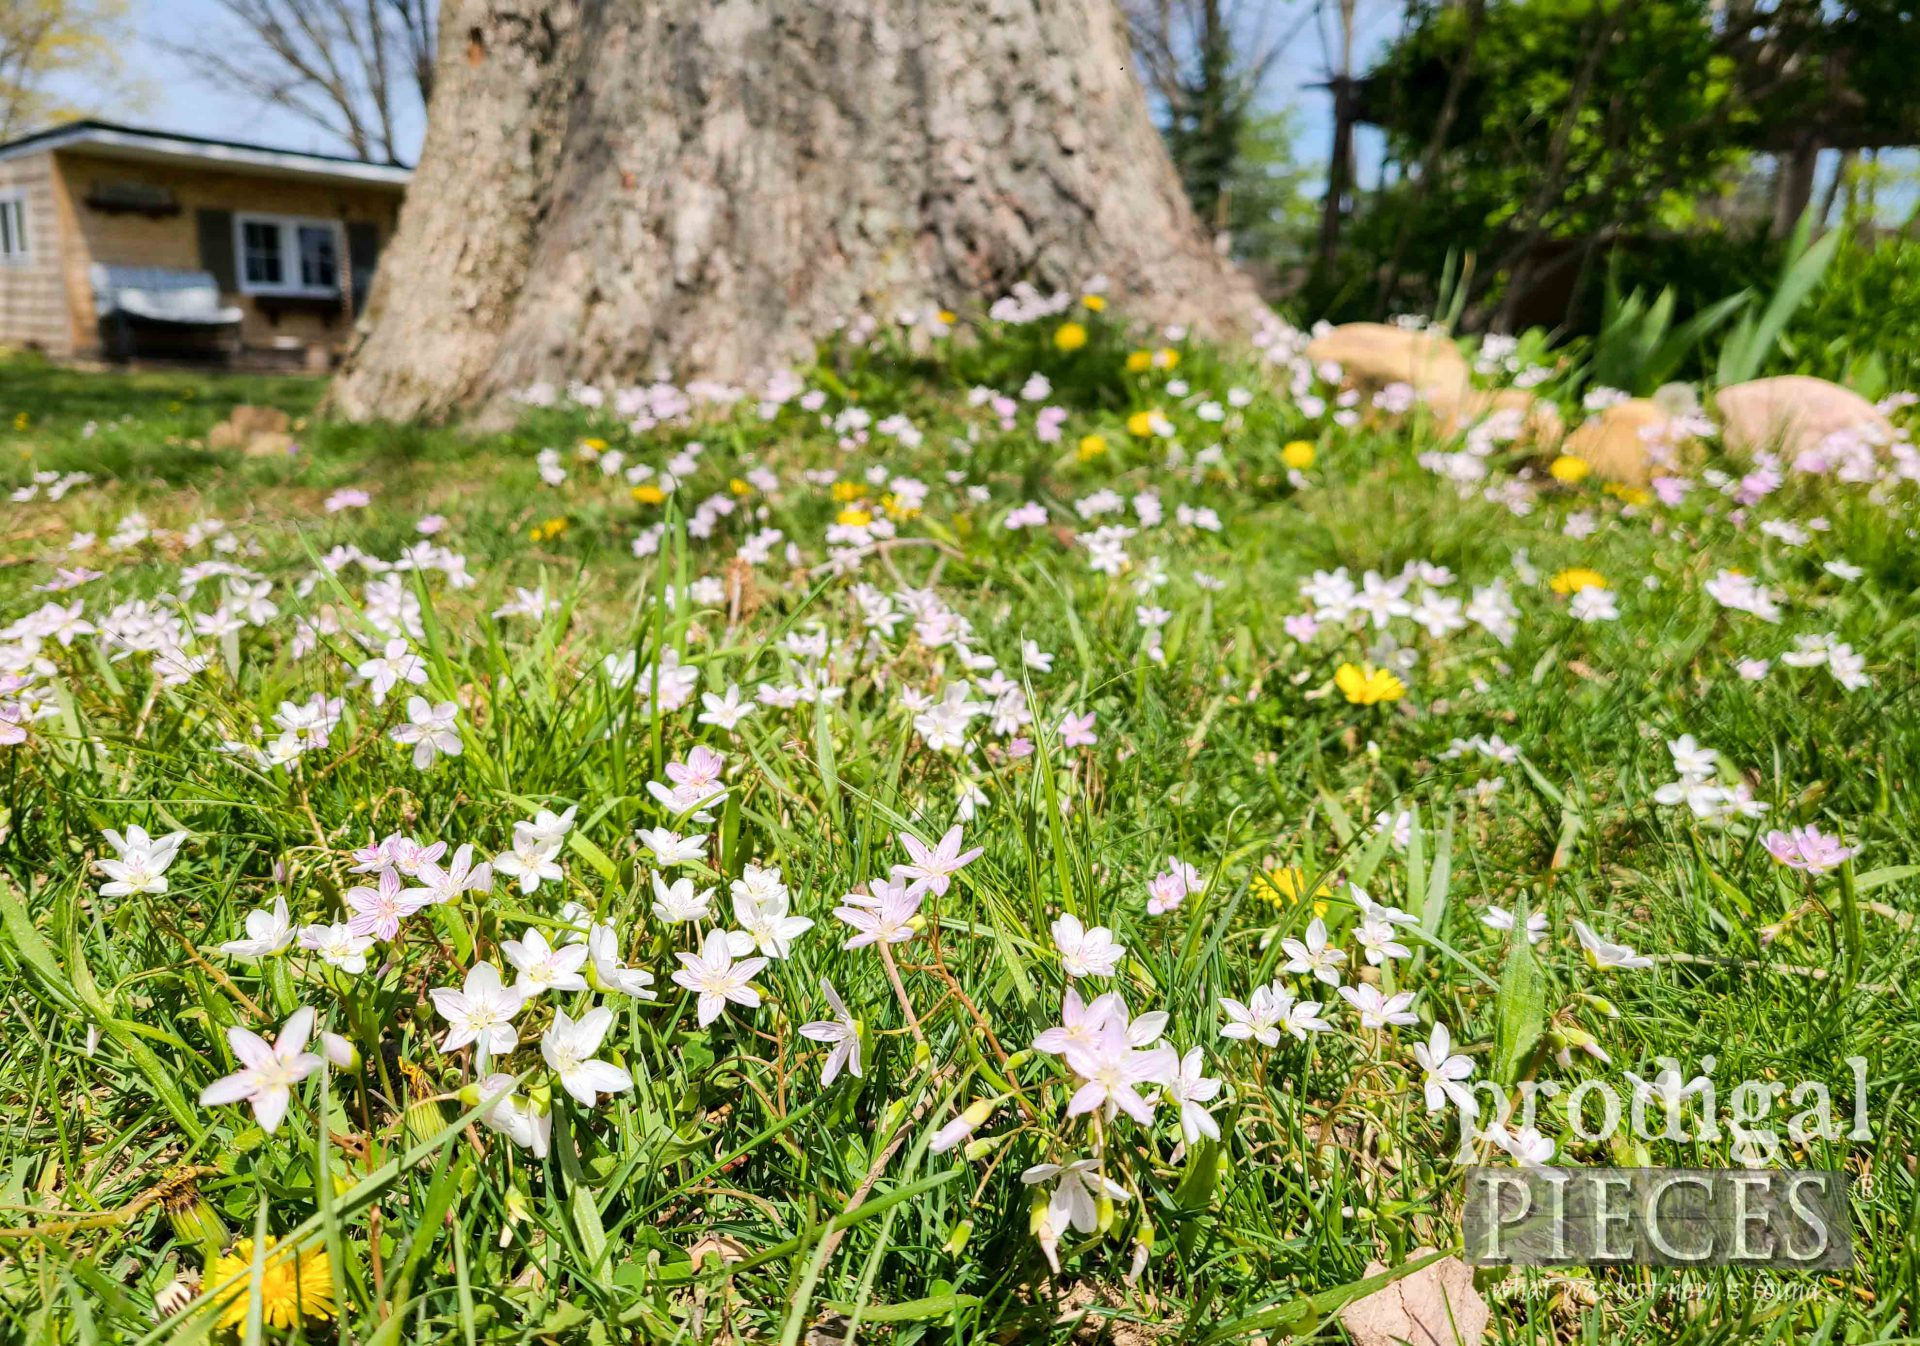 Spring Beauty Flower in the Grass by Prodigal Pieces | prodigalpieces.com #prodigalpieces #flowers